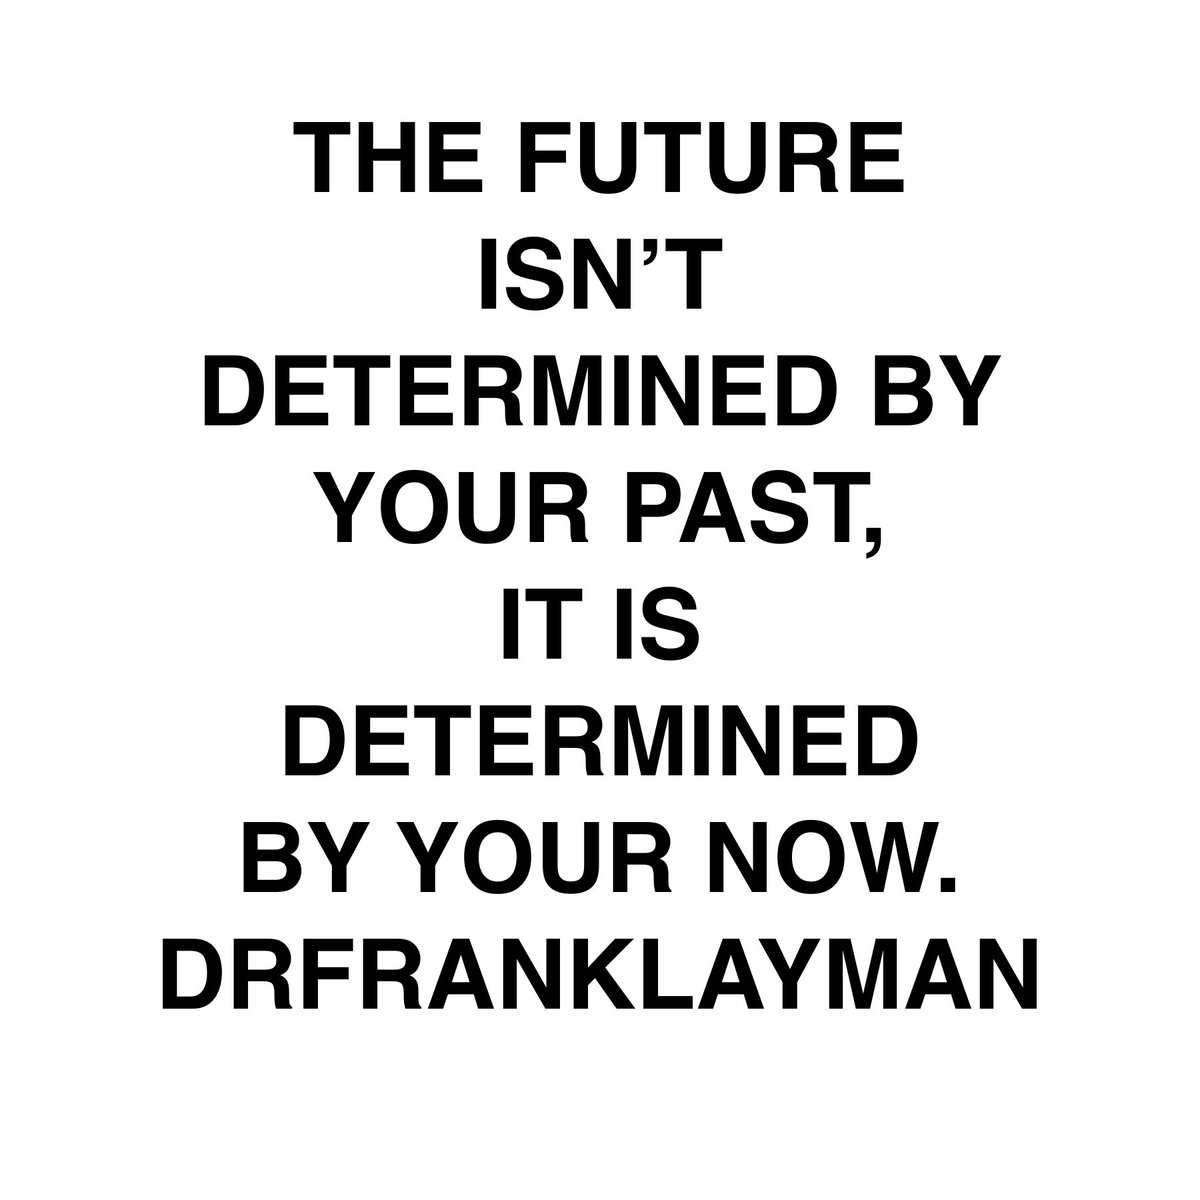 @DrSTLT The Future Be #dedicated to &quot;Your Now&quot; #DSD #journal #inspiration Reflections DRG  https://www. amazon.com/Daily-Reflecti ve-Growth-Frank-Layman/dp/0997921315/ref=sr_1_1?ie=UTF8&amp;qid=1503226287&amp;sr=8-1&amp;keywords=daily+reflective+growth &nbsp; …   https://www. amazon.com/Dr.-Frank-Laym an/e/B00JBG6PH6/ref=sr_ntt_srch_lnk_1?qid=1501667255&amp;sr=8-1 &nbsp; …  RT<br>http://pic.twitter.com/NQrjHGNT4A